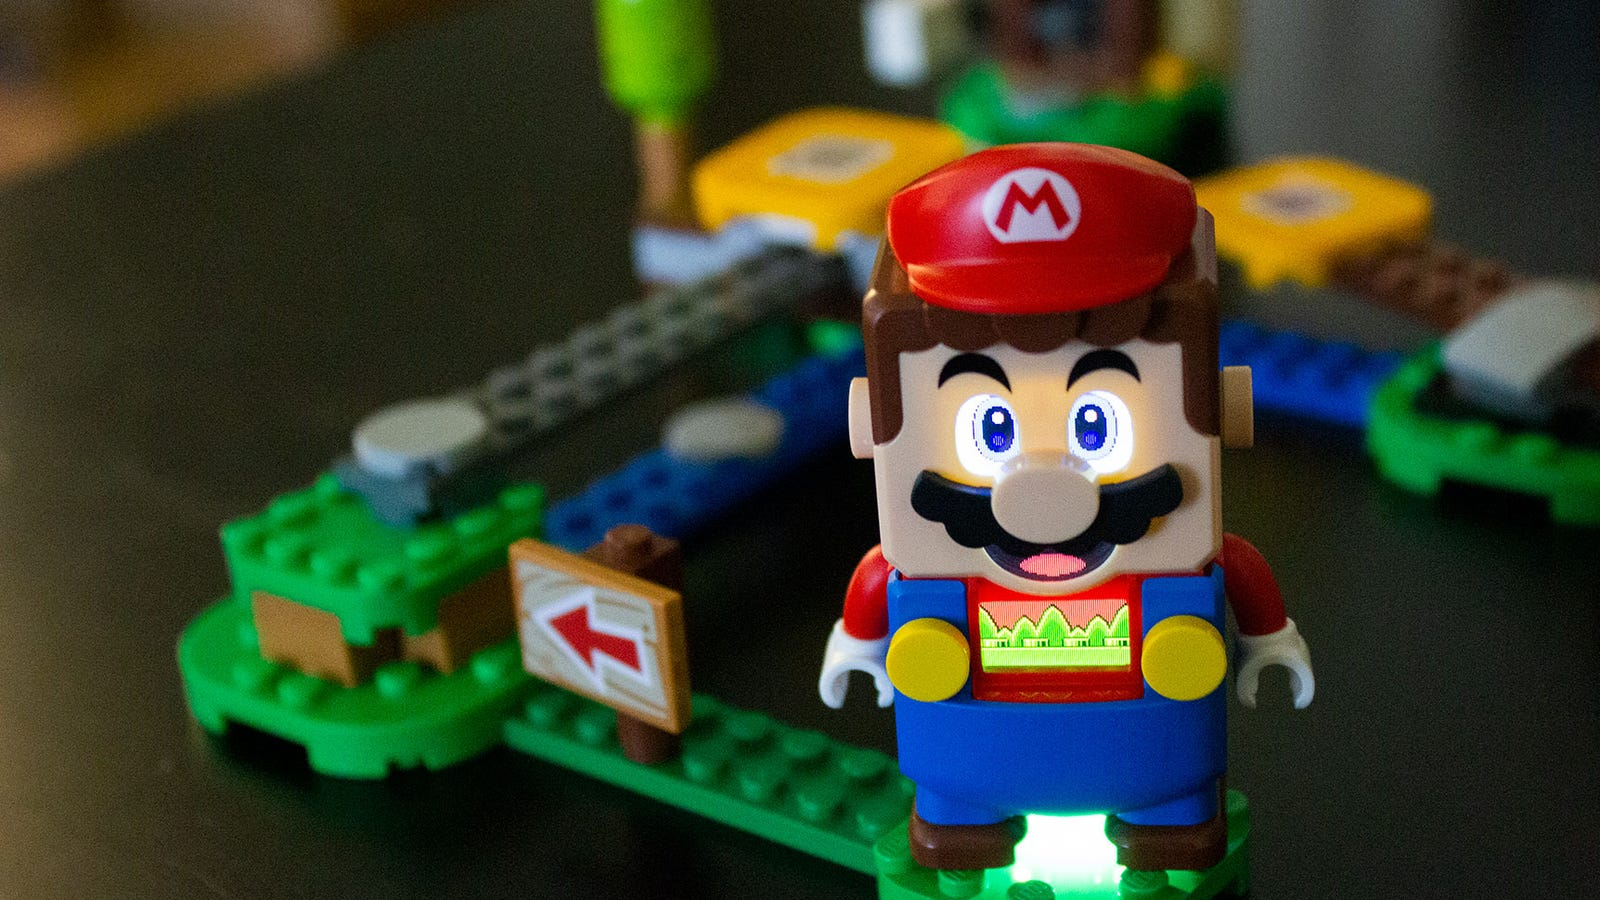 The Mario decide aspects LCD eyes, mouth, and monitor screen in his chest. There's additionally a sensor that reads brick colours and sticker barcodes.